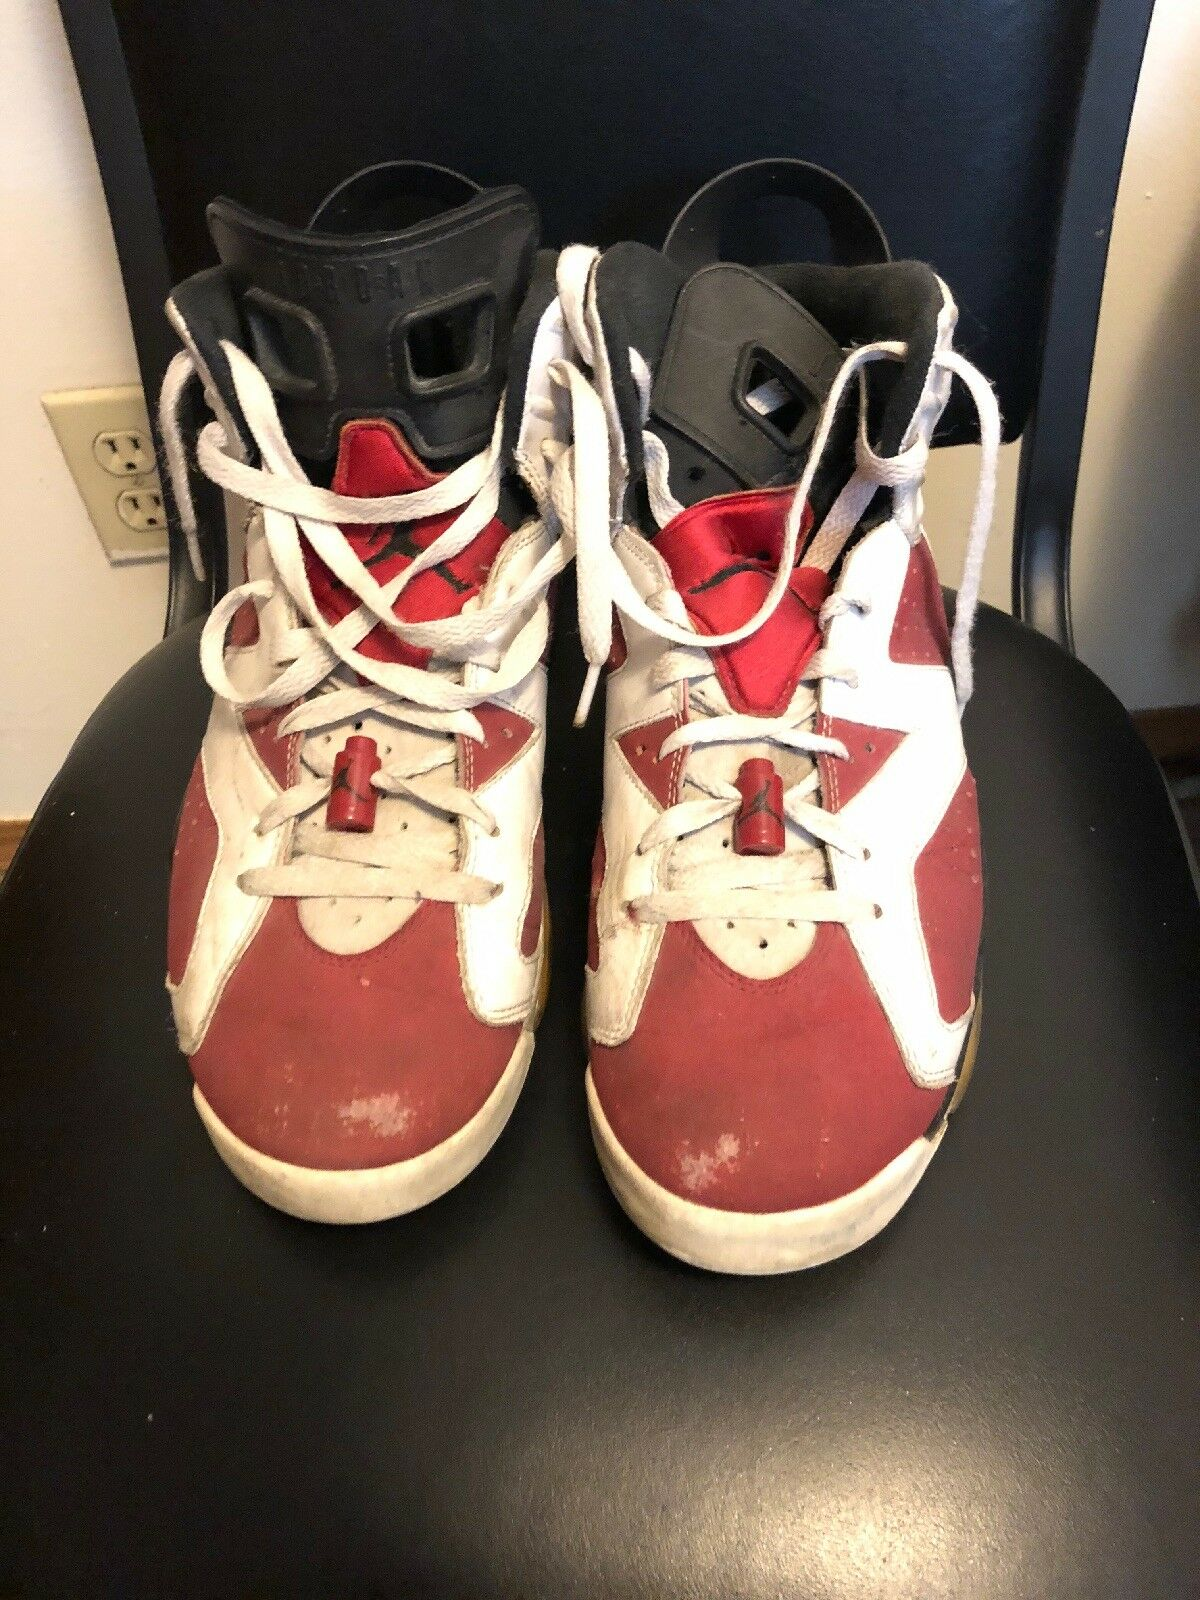 6a4e0921f9af Men s Women s carmine 6 size 11 New New New product The latest technology  Known for